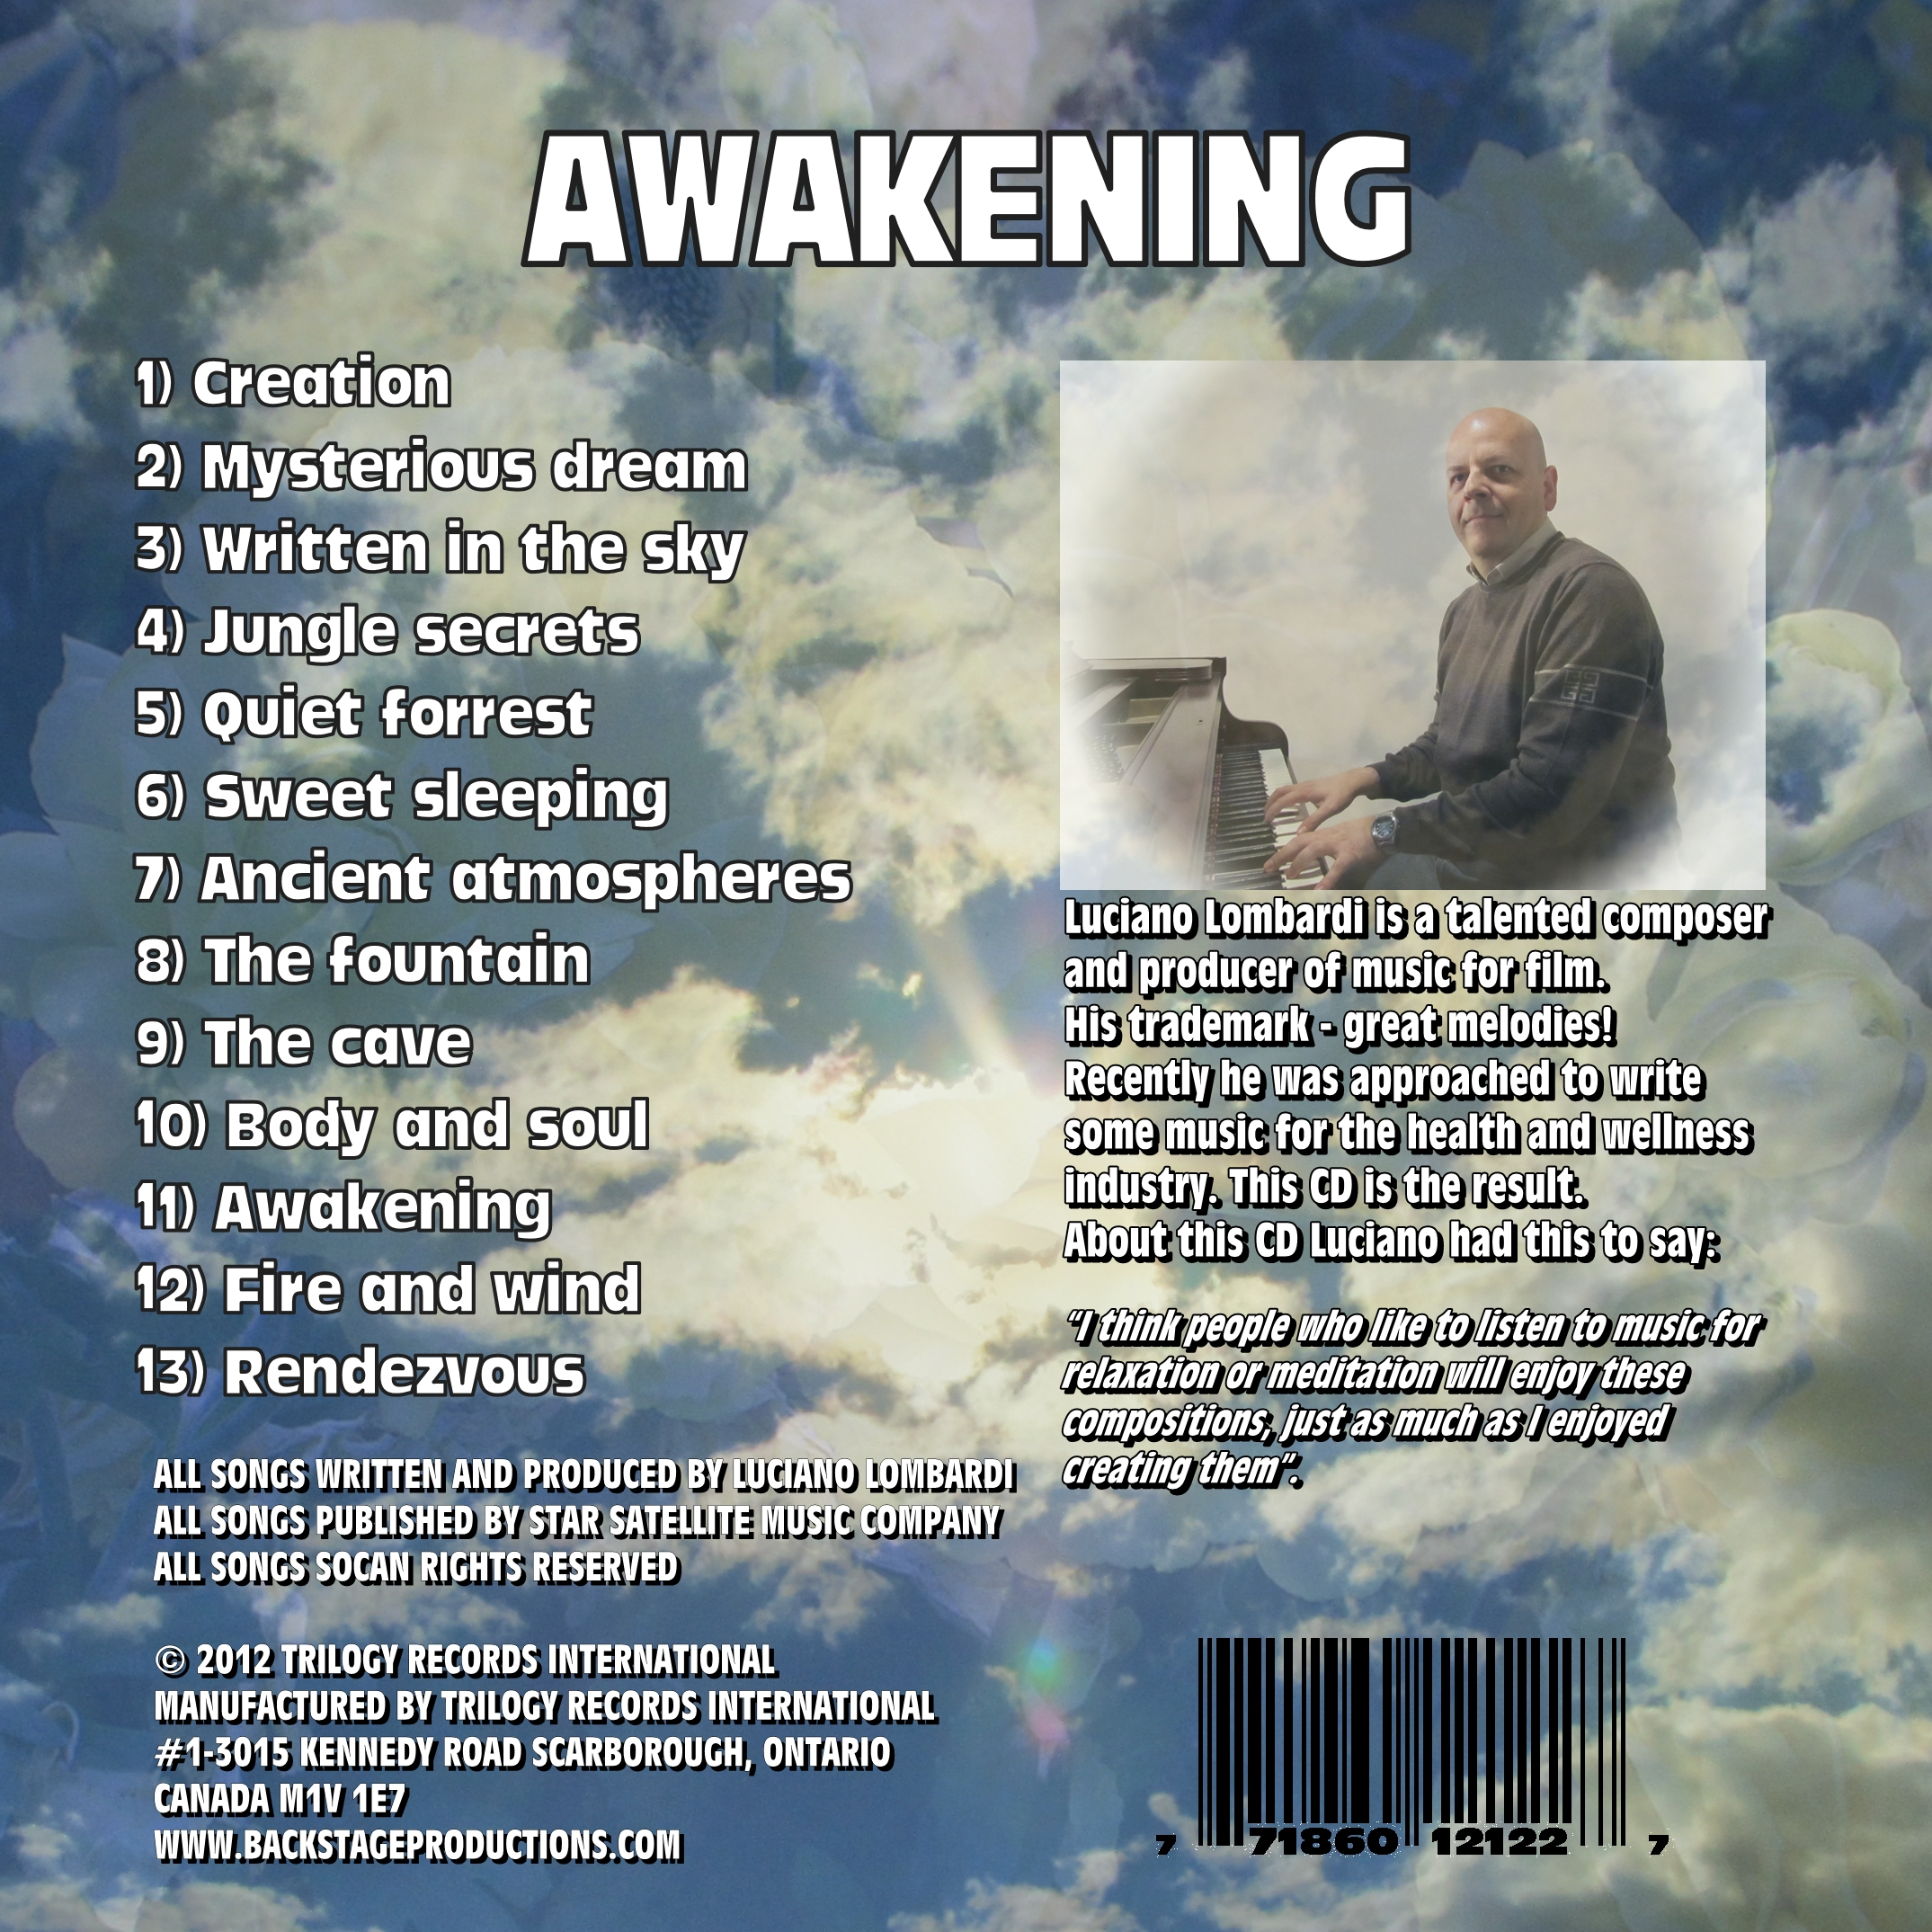 https://backstageproductions.com/bsp-content/uploads/2016/03/Awakening-Back.jpg